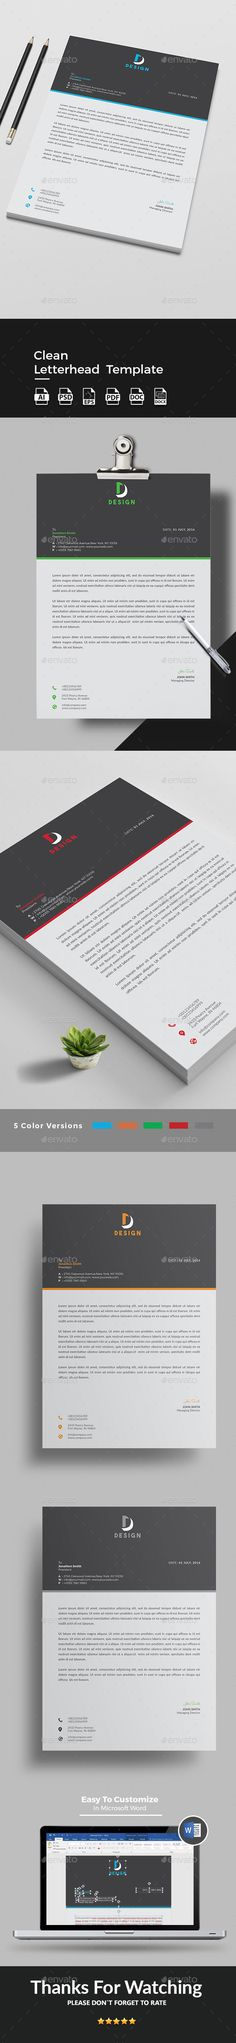 Professional Letterhead Templates Enchanting 13 Best #letterhead Templates Images On Pinterest  Contact Paper .